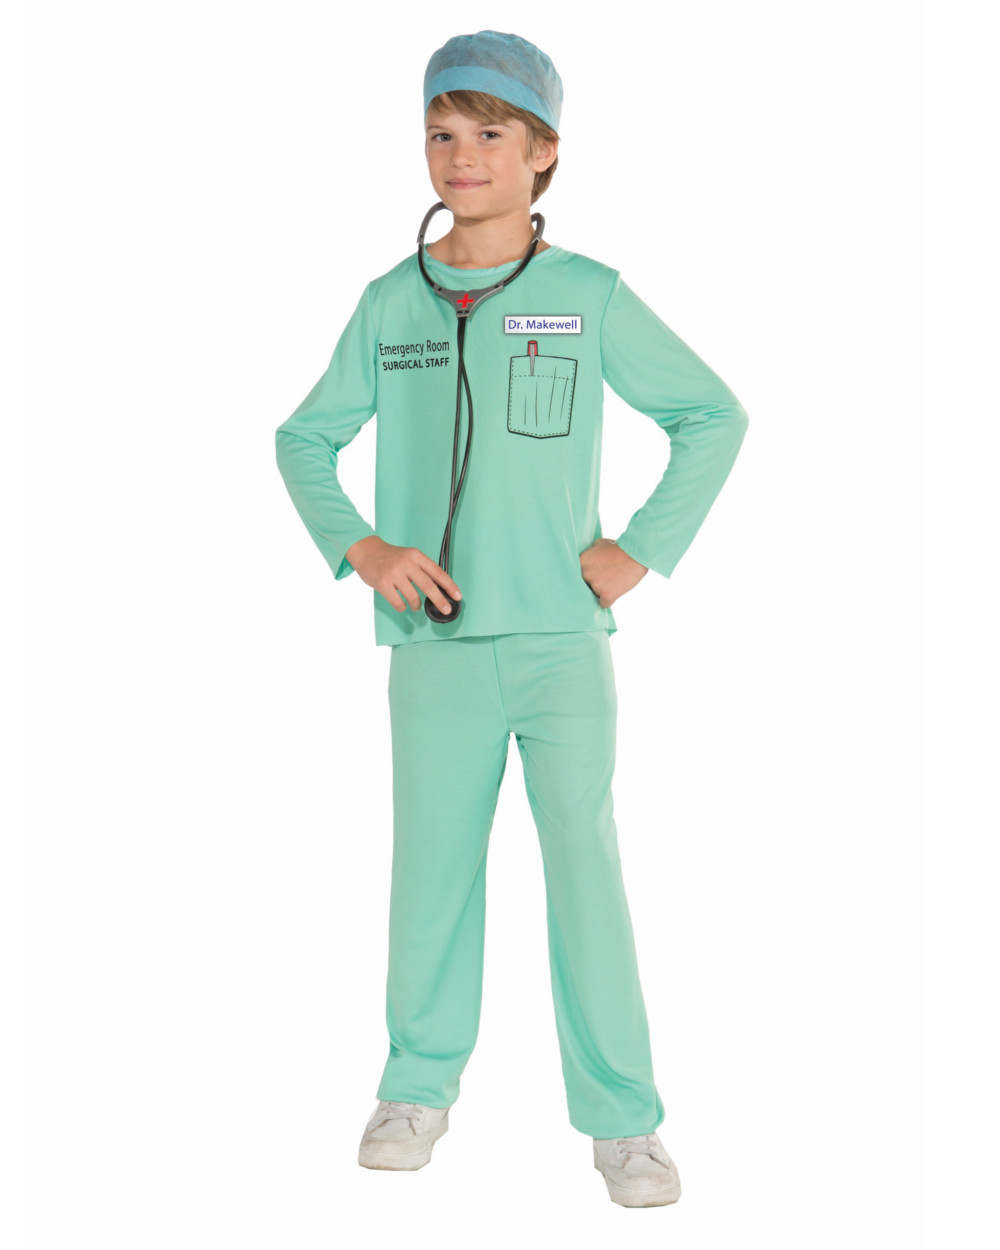 Childs Medical Masquerade Doctor Surgeon Dr Makewell Costume Small 4-6 - Walmart.com  sc 1 st  Walmart & Childs Medical Masquerade Doctor Surgeon Dr Makewell Costume Small 4 ...